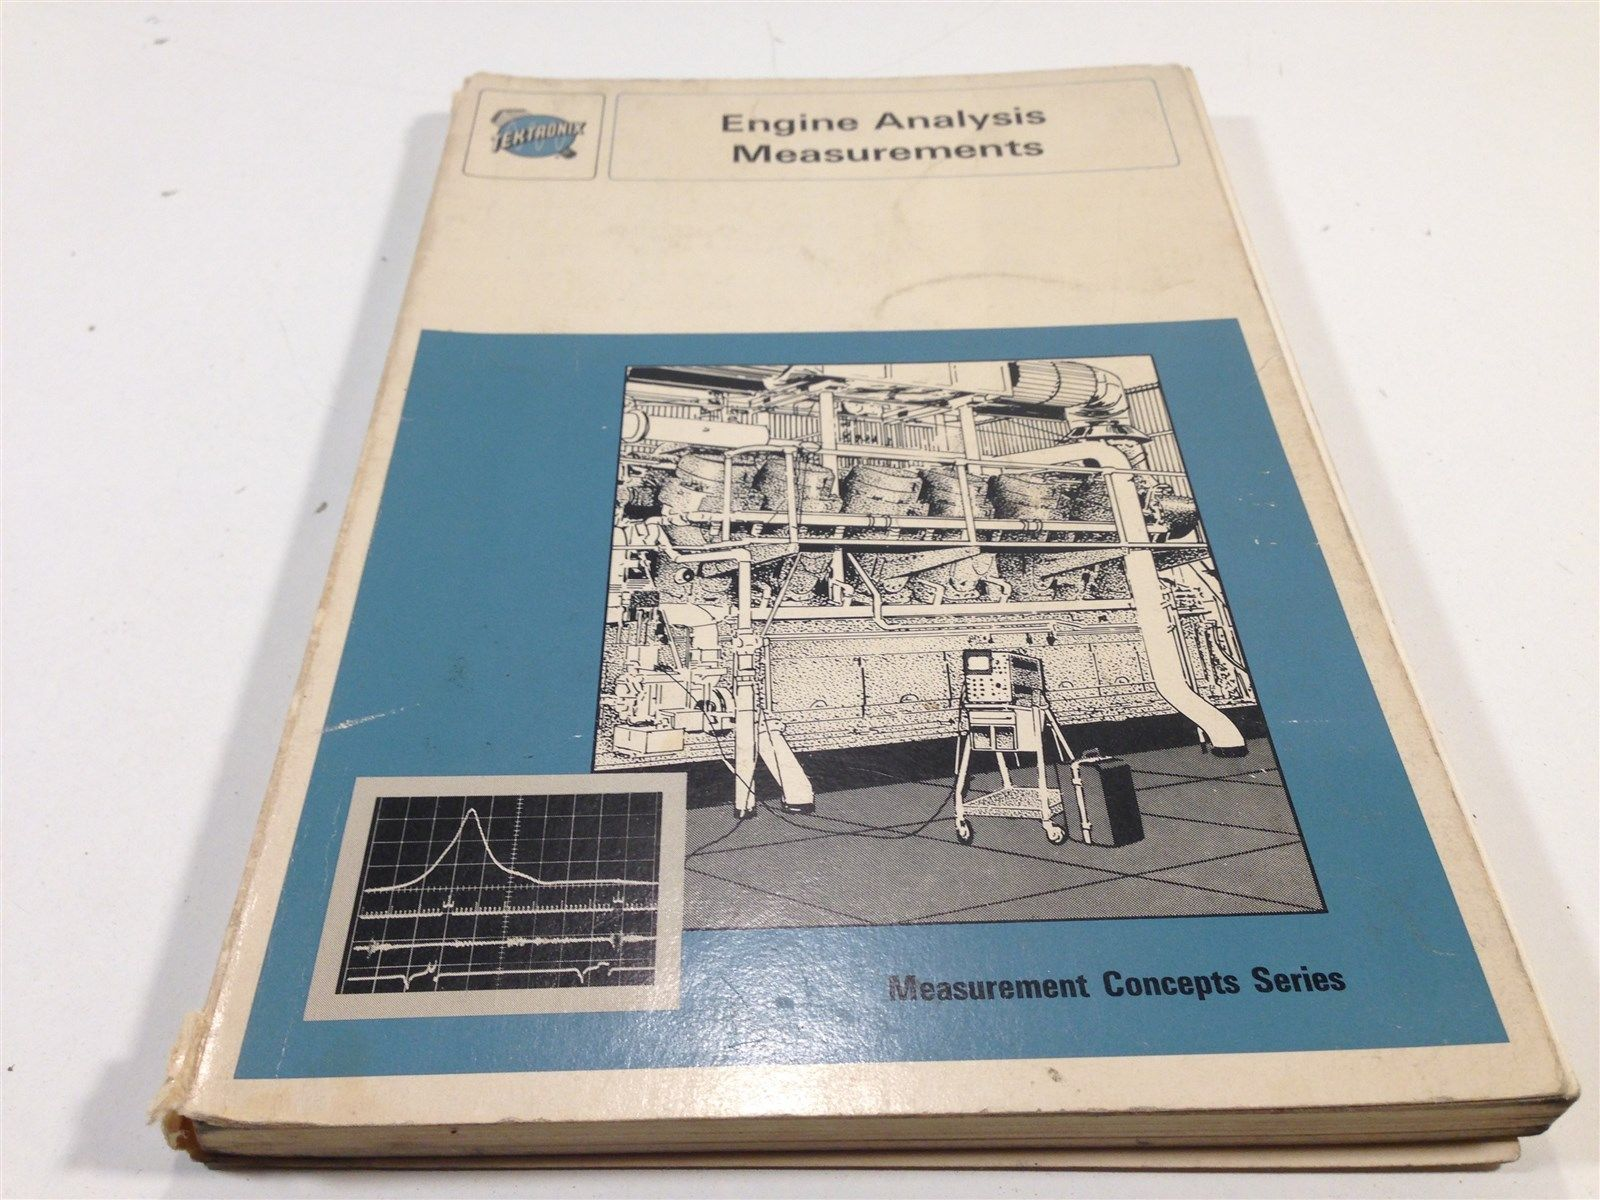 1970 Tektronix Engine Analysis Measurements by Jim Thurman Illustrated First Ed